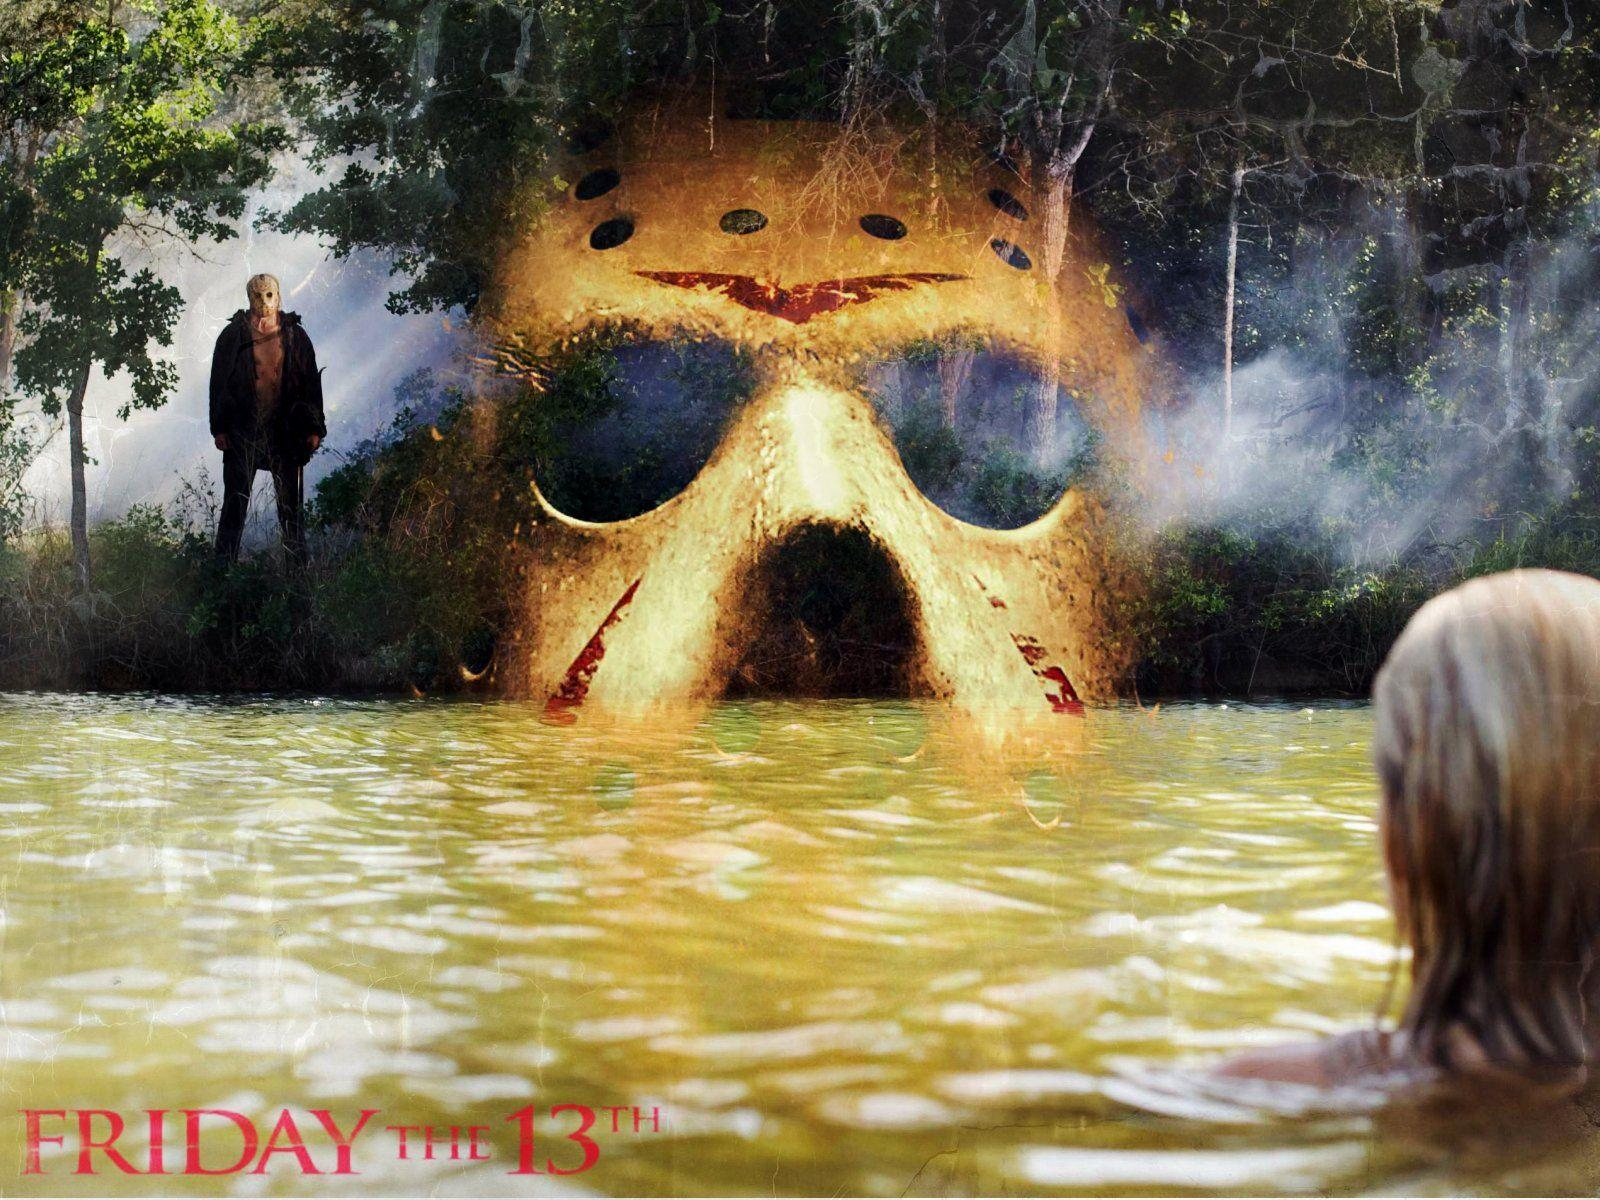 Friday The 13th 2009 Wallpapers